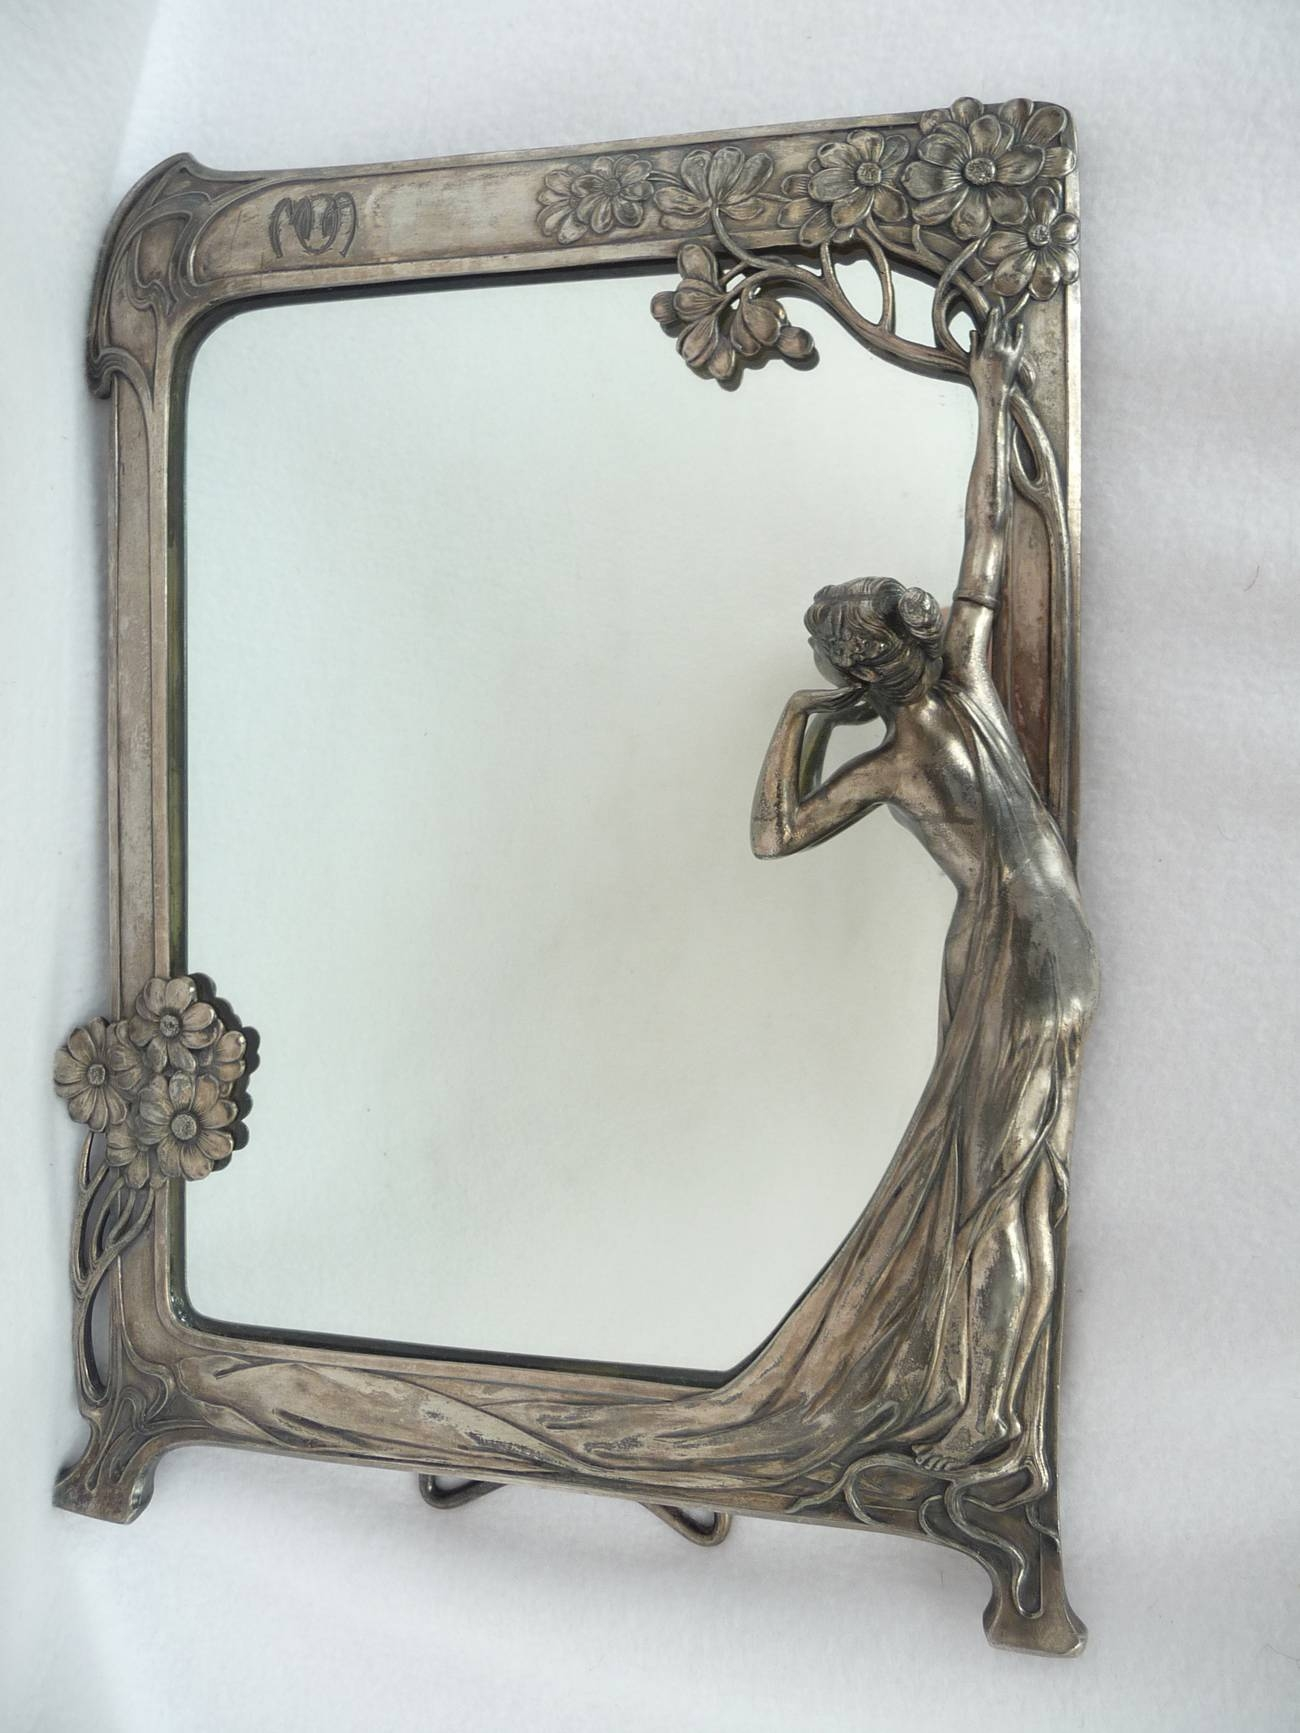 Tennants Auctioneers: An Art Nouveau Wmf Plated Figural Easel Mirror With Regard To Art Nouveau Mirrors (View 16 of 25)